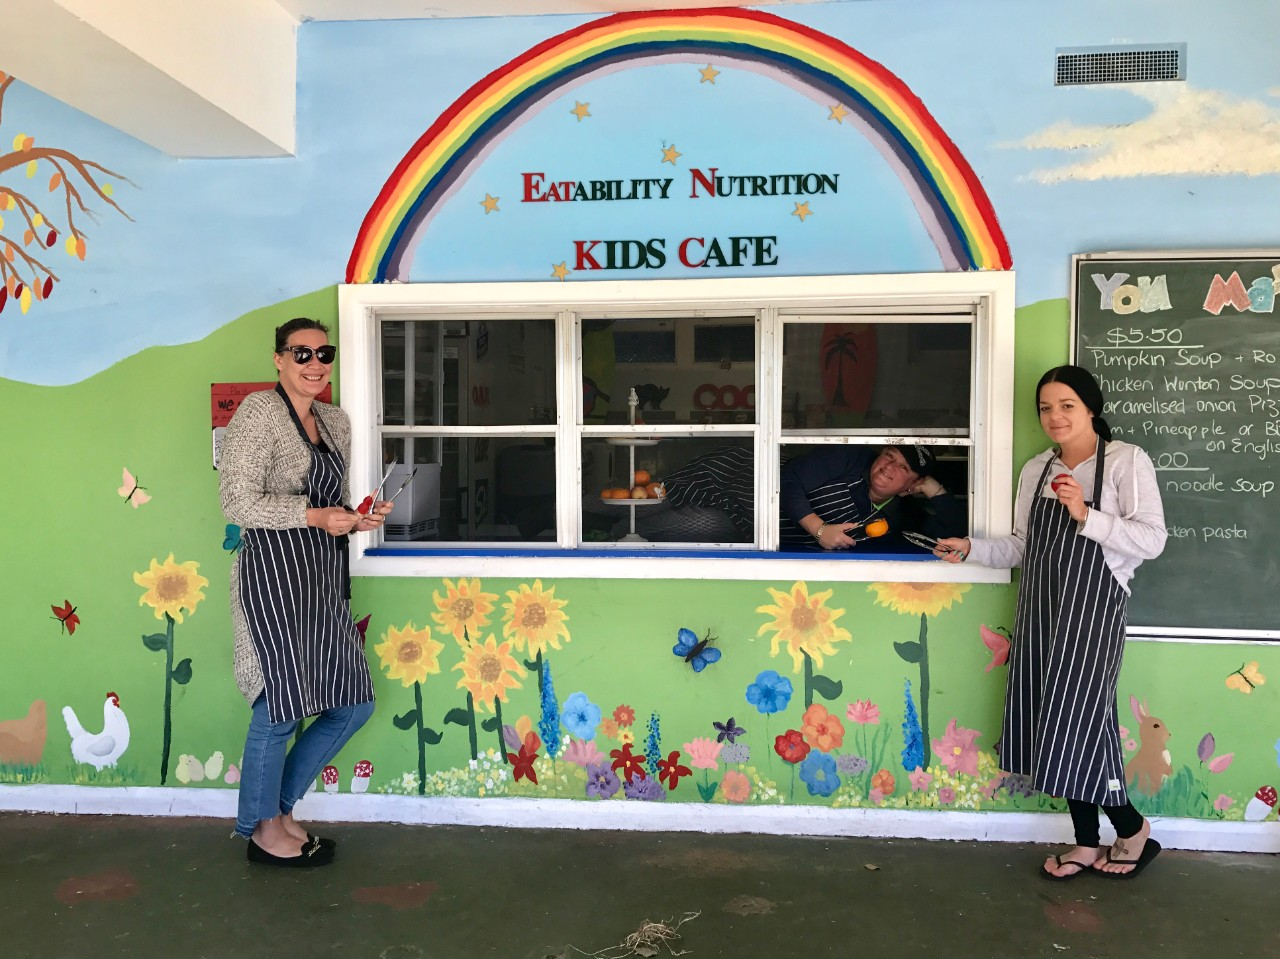 1 woman inside and 2 women standing outside the bright and colourful canteen.